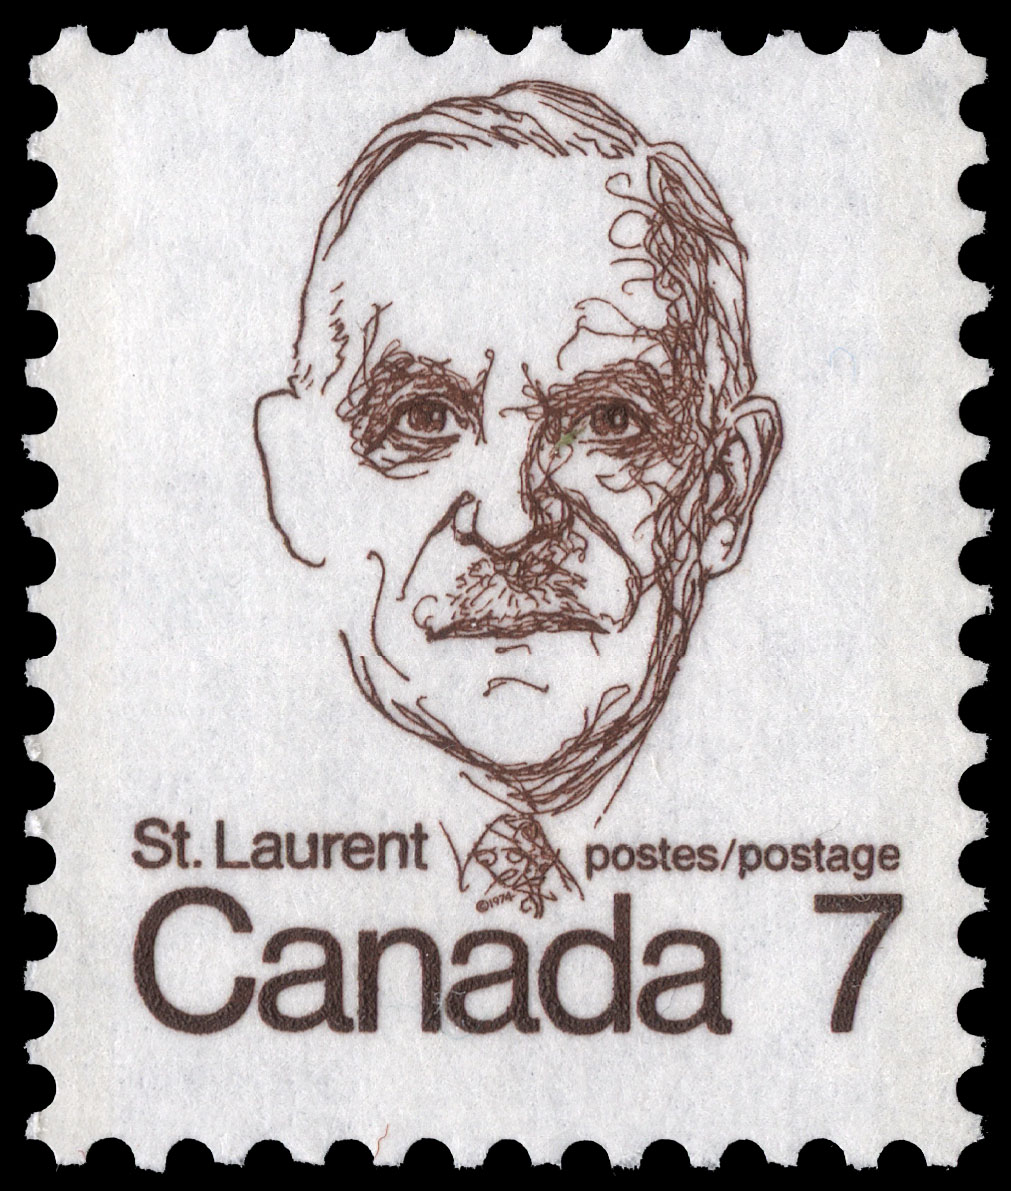 Saint-Laurent Canada Postage Stamp